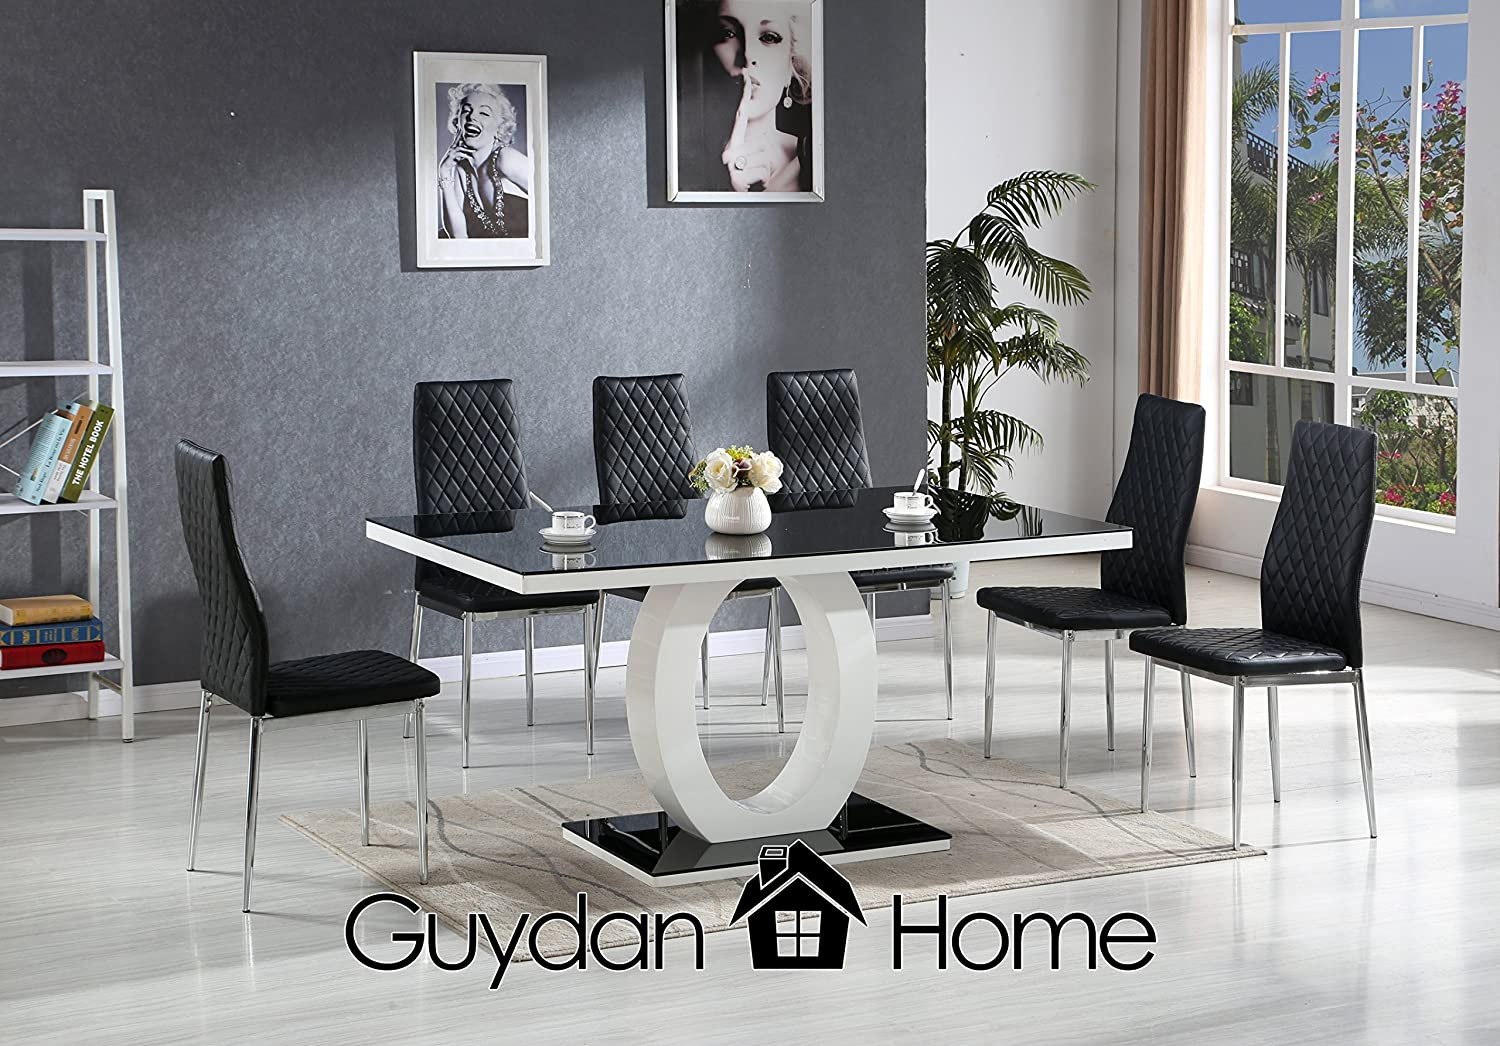 Venice Black White High Gloss Glass Dining Table Set And 6 Faux Leather Chairs Amazon Co Uk Kitchen Home